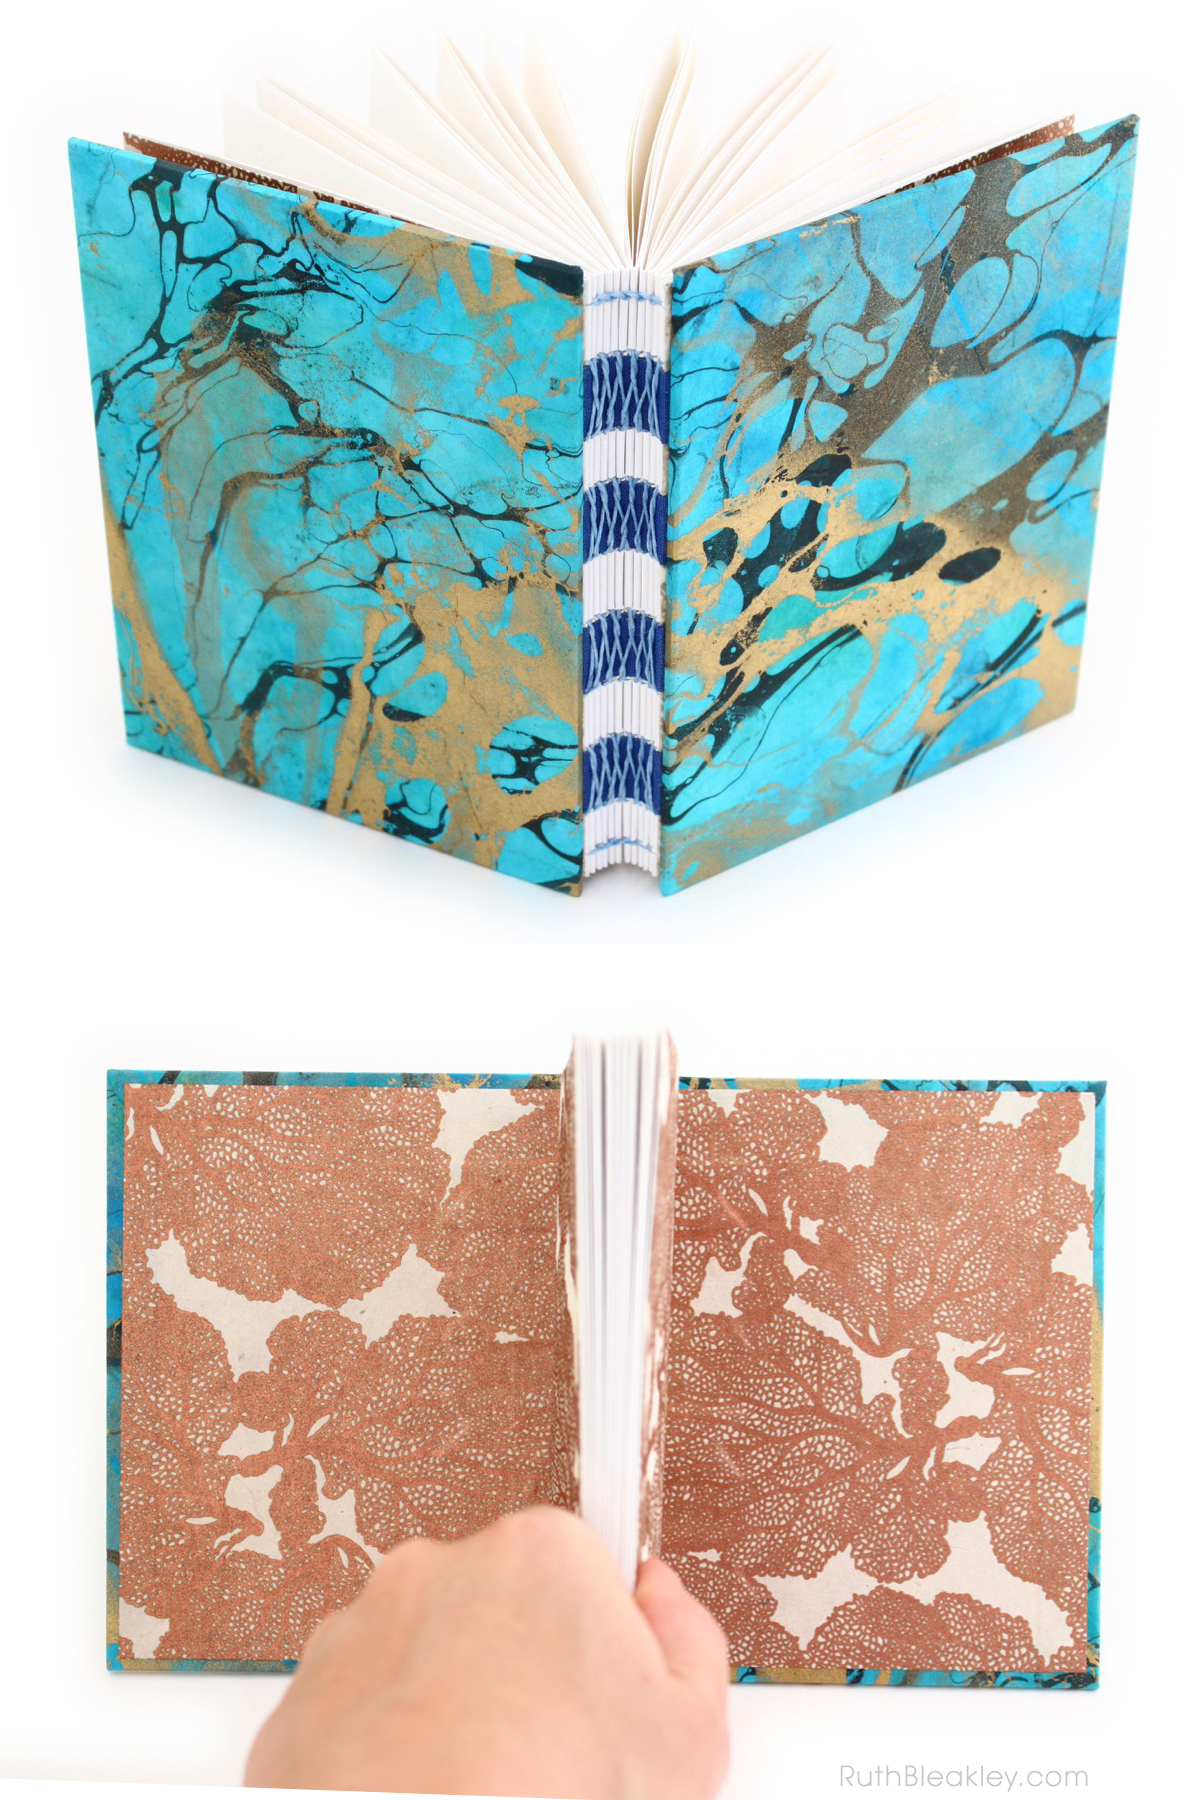 Unlined Handmade Journal with Blue Marbled Covers by Ruth Bleakley